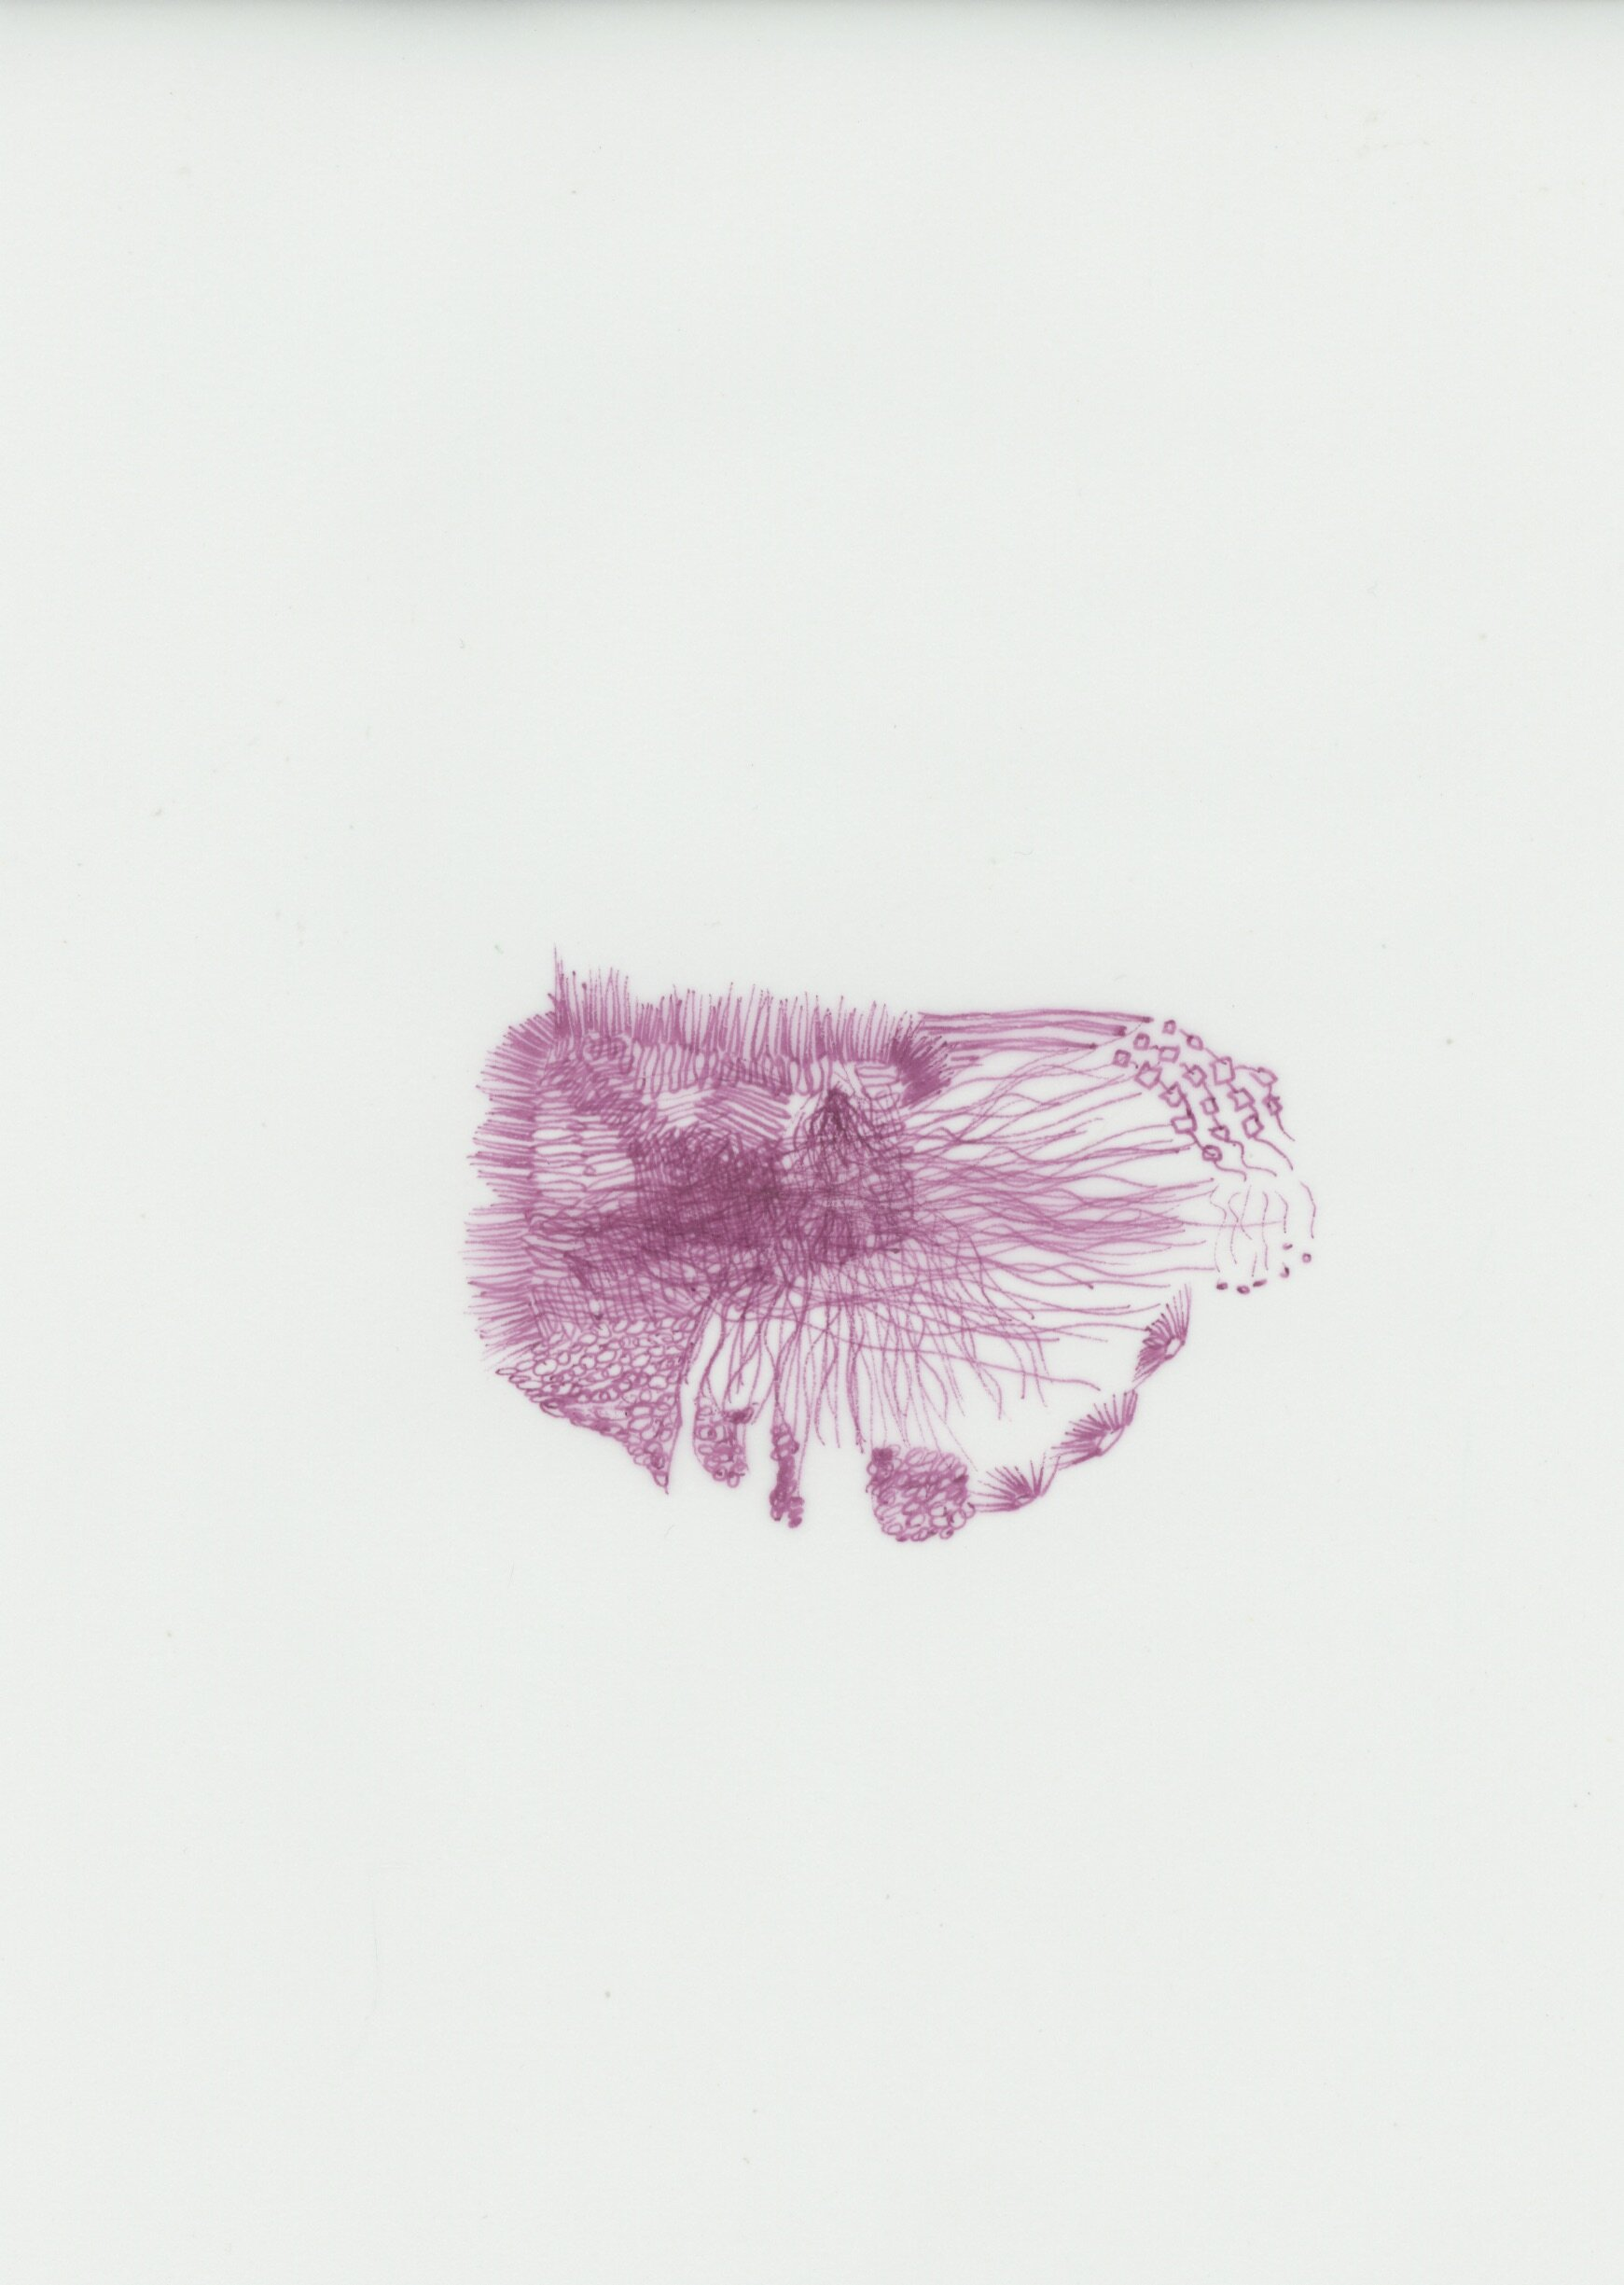 020118.33.Explosions in the Sky